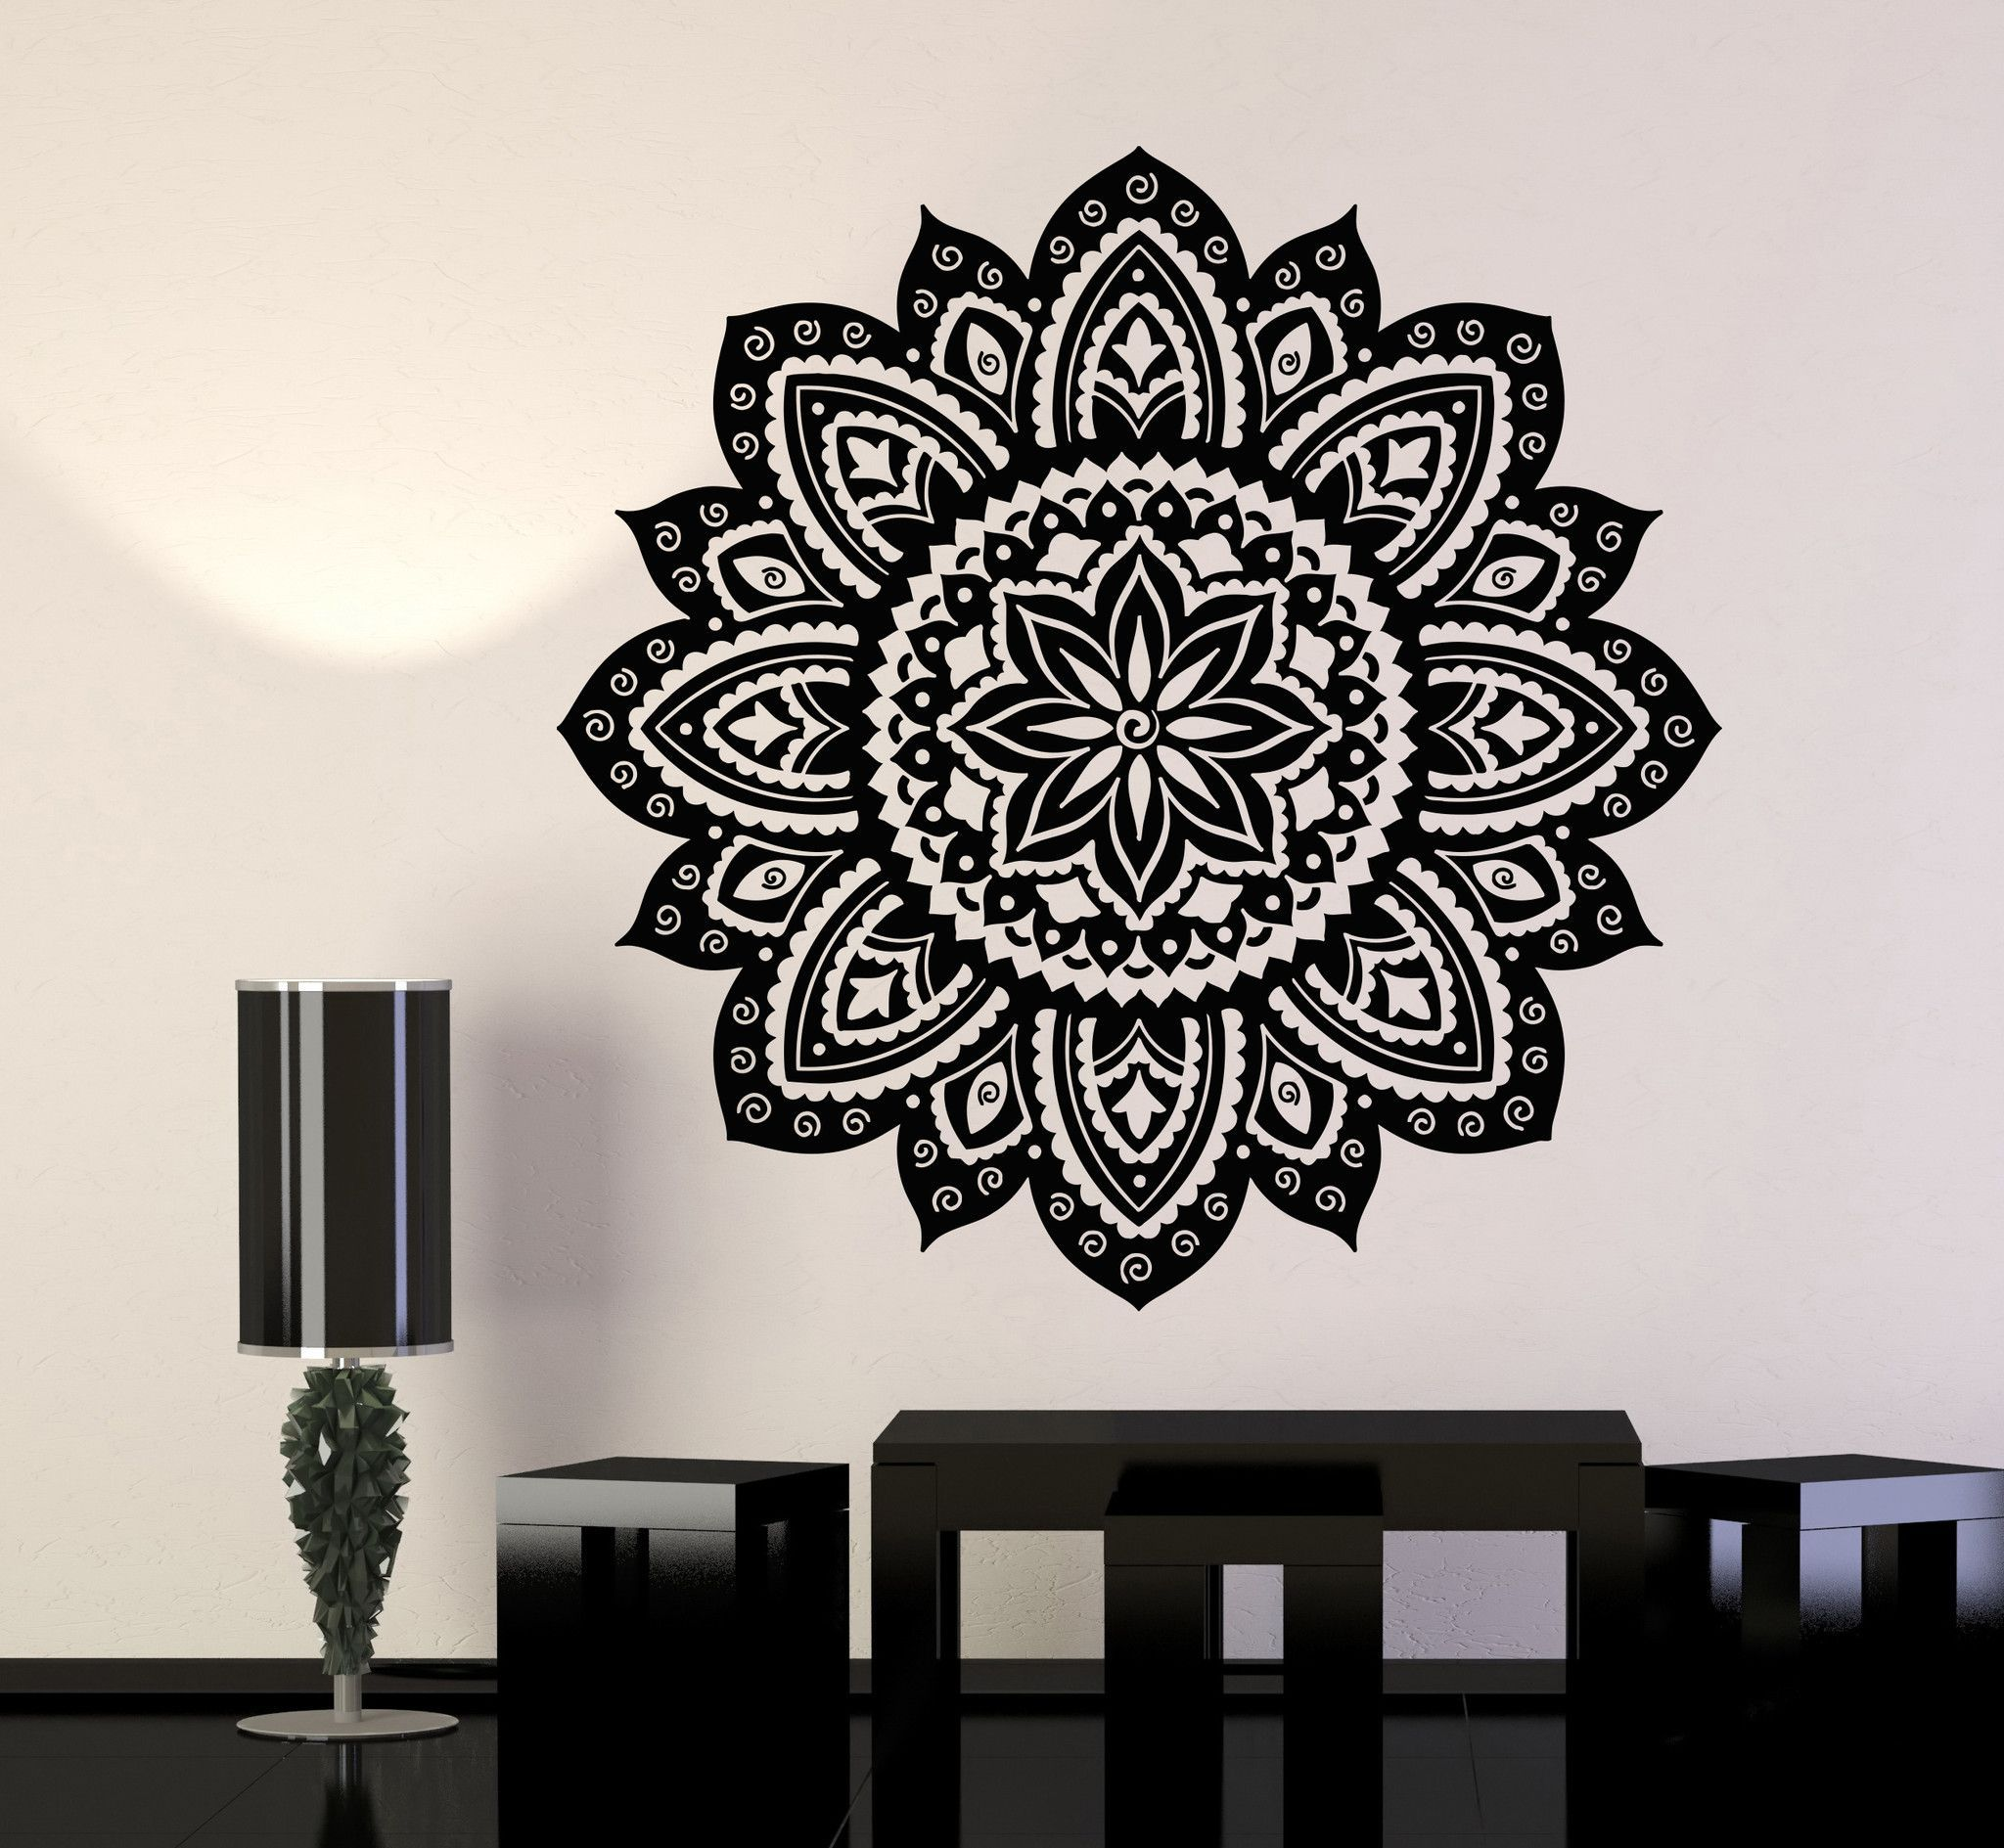 Vinyl Wall Decal Yoga Studio Mandala Lotus Flower Home Decor - Yoga studio wall decals